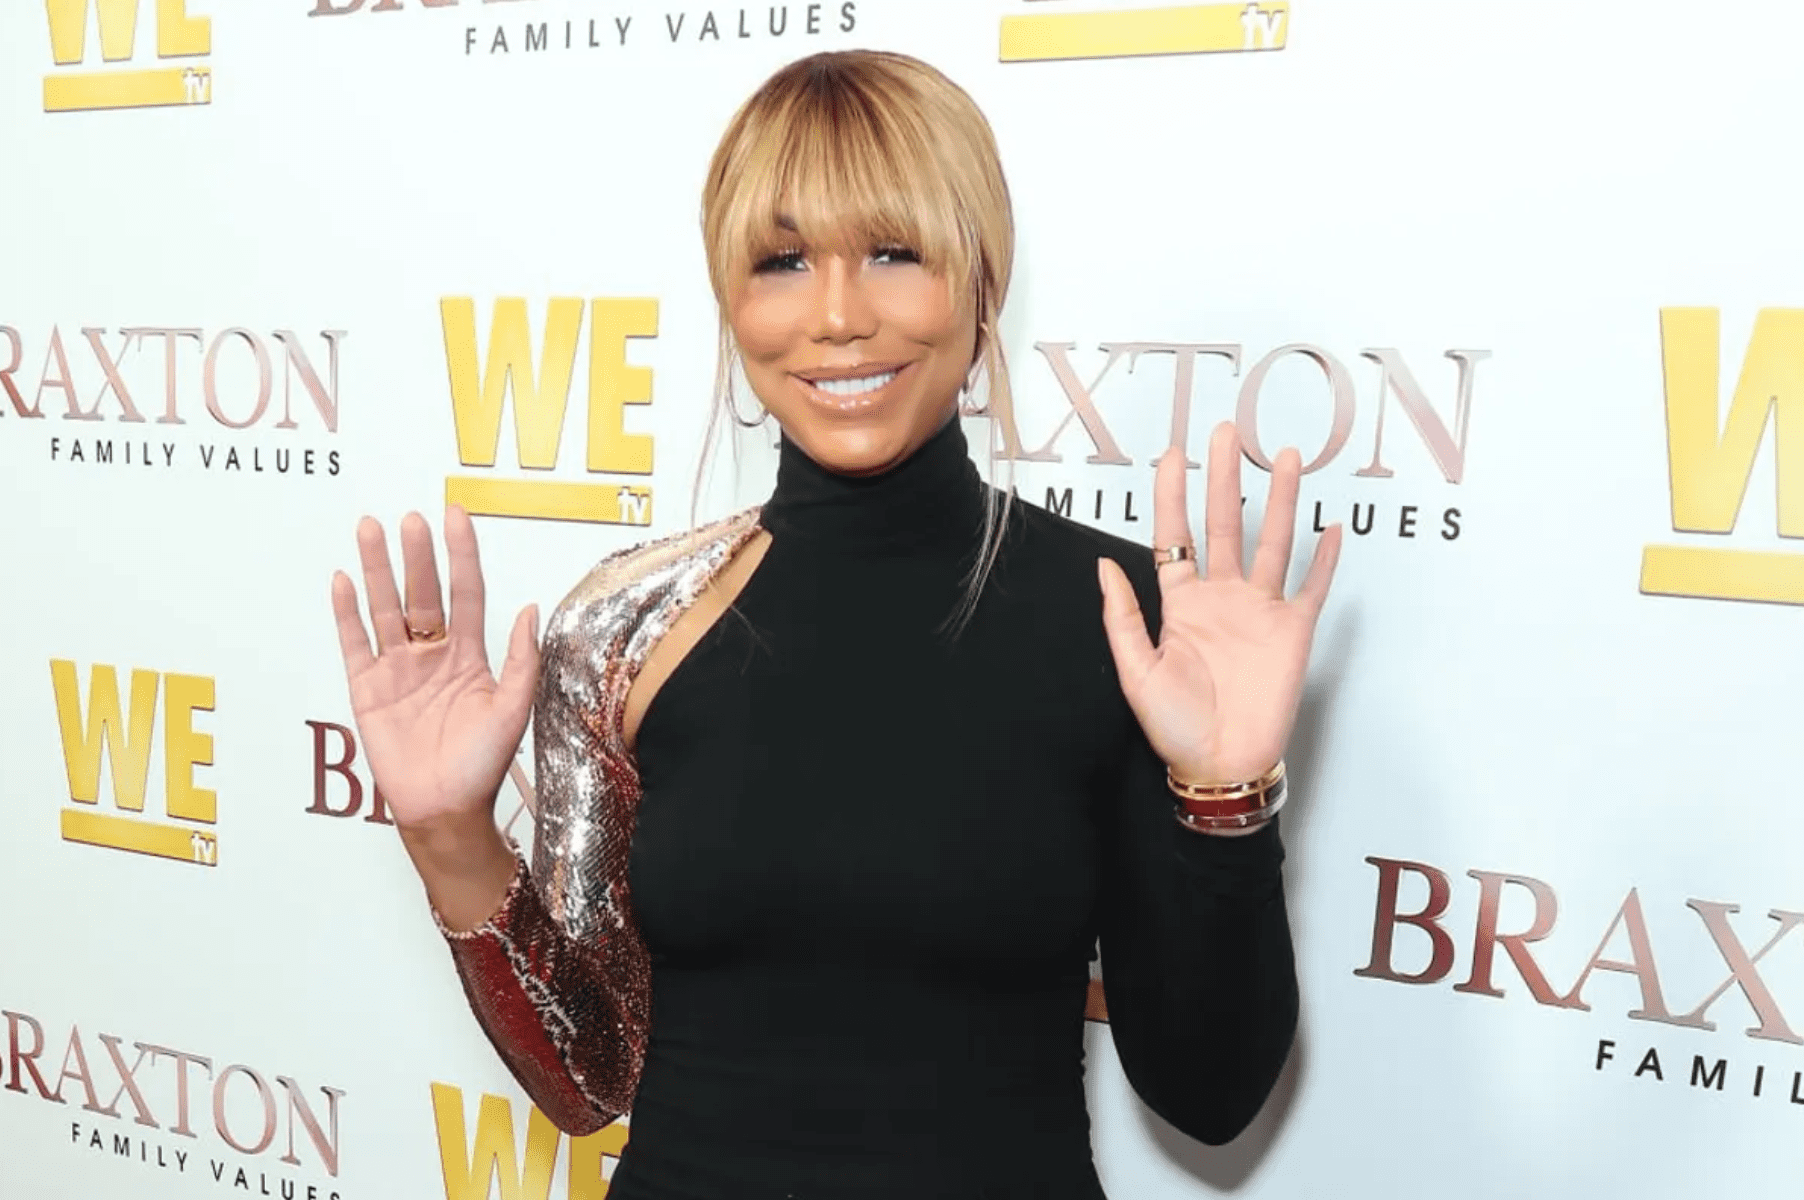 """Tamar Braxton at the """"Braxton Family Values"""" Season 6 premiere at The Doheny Room in West Hollywood, California on April 02, 2019. 